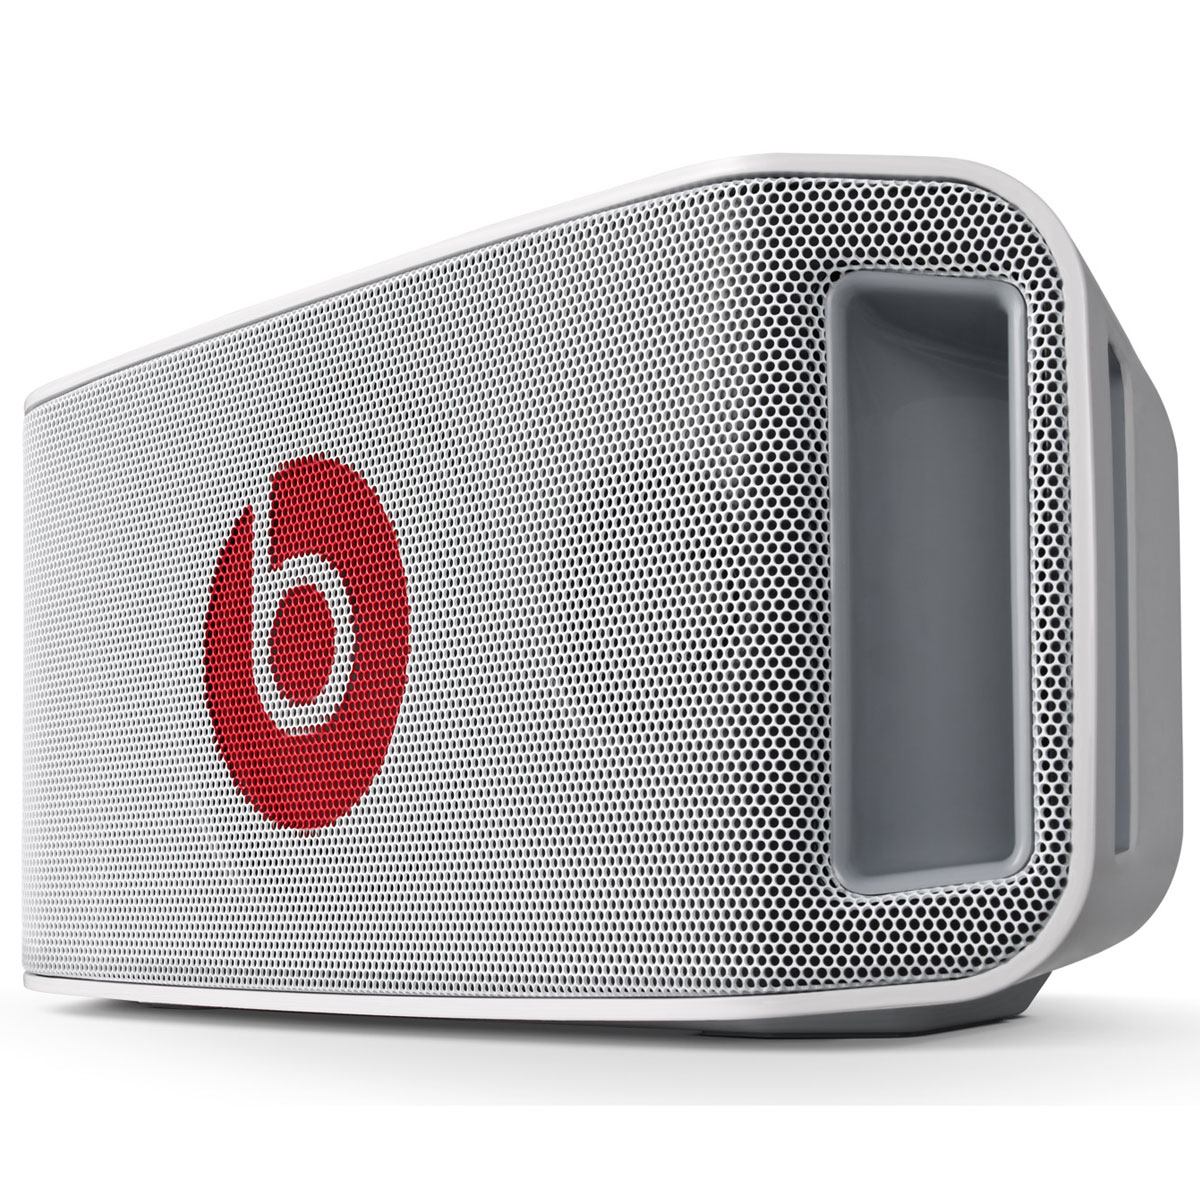 beats by dr dre beatbox portable blanc 900 00050 03 achat vente dock enceinte bluetooth. Black Bedroom Furniture Sets. Home Design Ideas